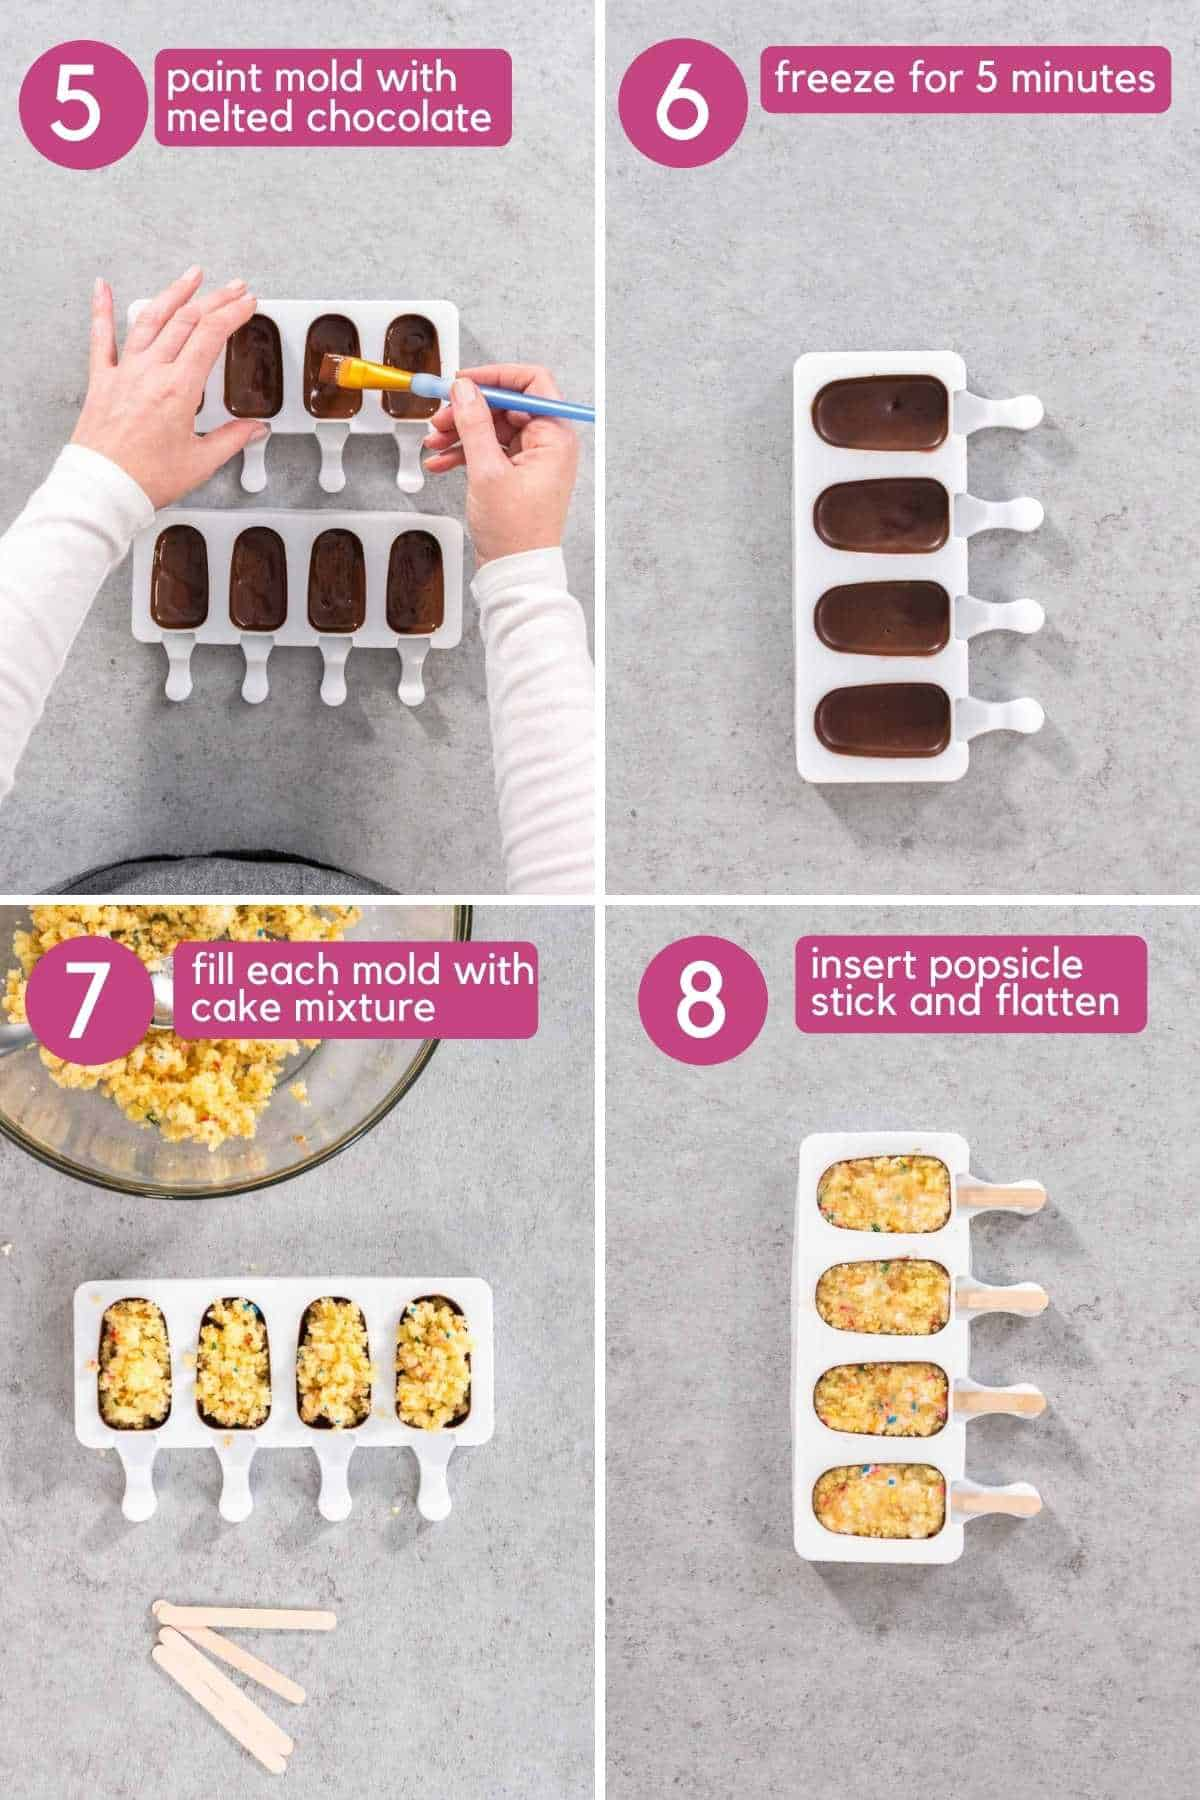 Paint chocolate onto mold and fill with cake mixture for cakesicles.